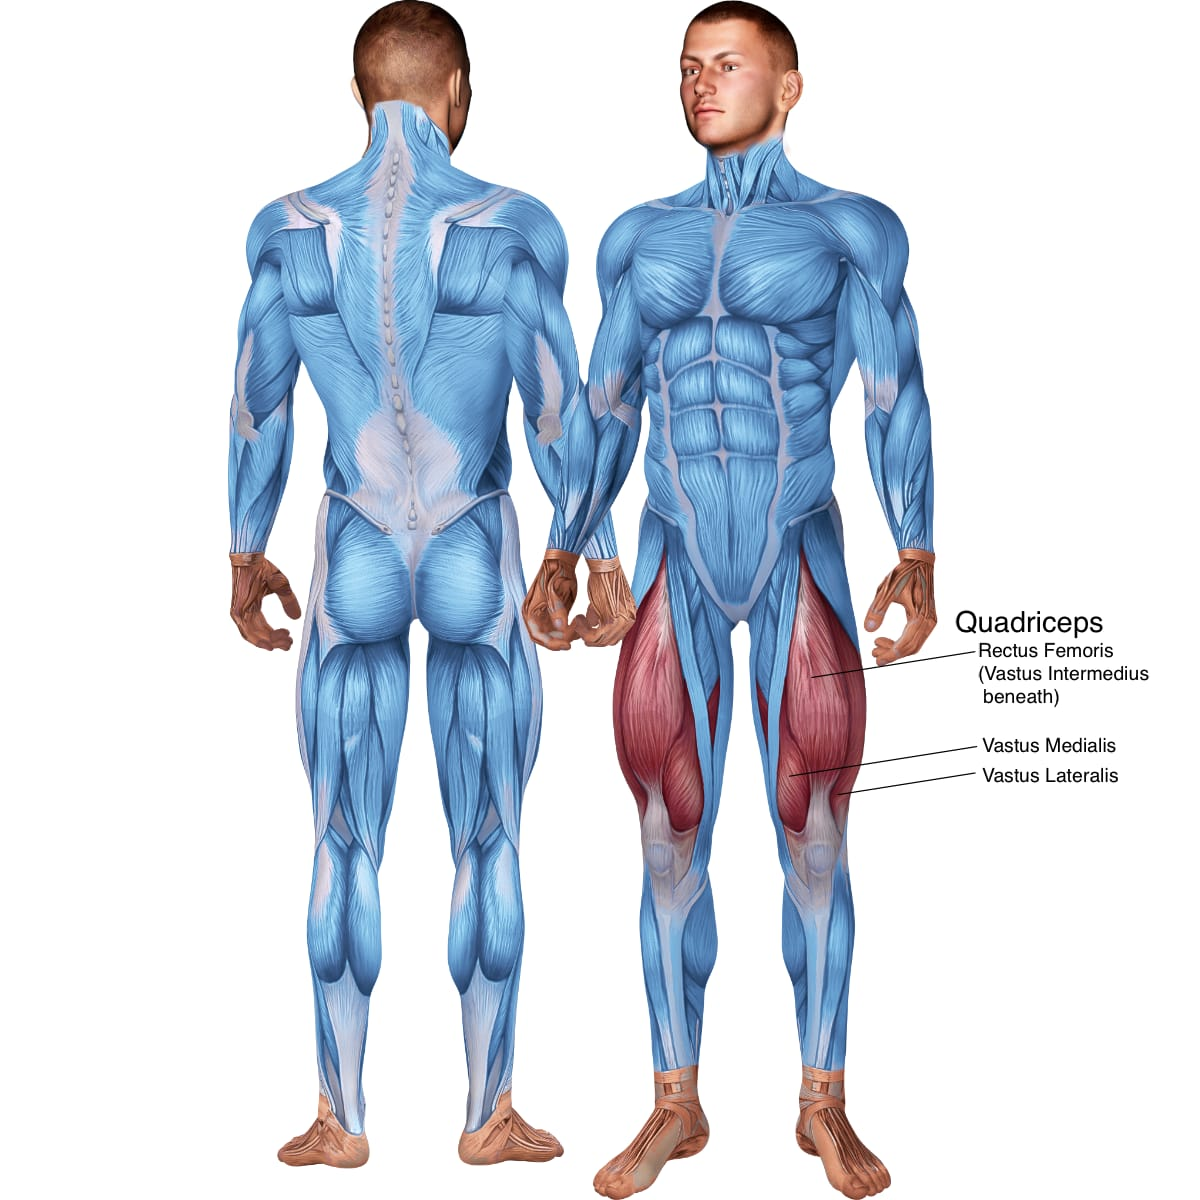 Skeletal muscle systems for a muscular man both front and back pose, with the Quadricep Muscles labeled (Rectus Femoris, Vastus Intermedius, Vastus Medialis, and Vastus Lateralis).